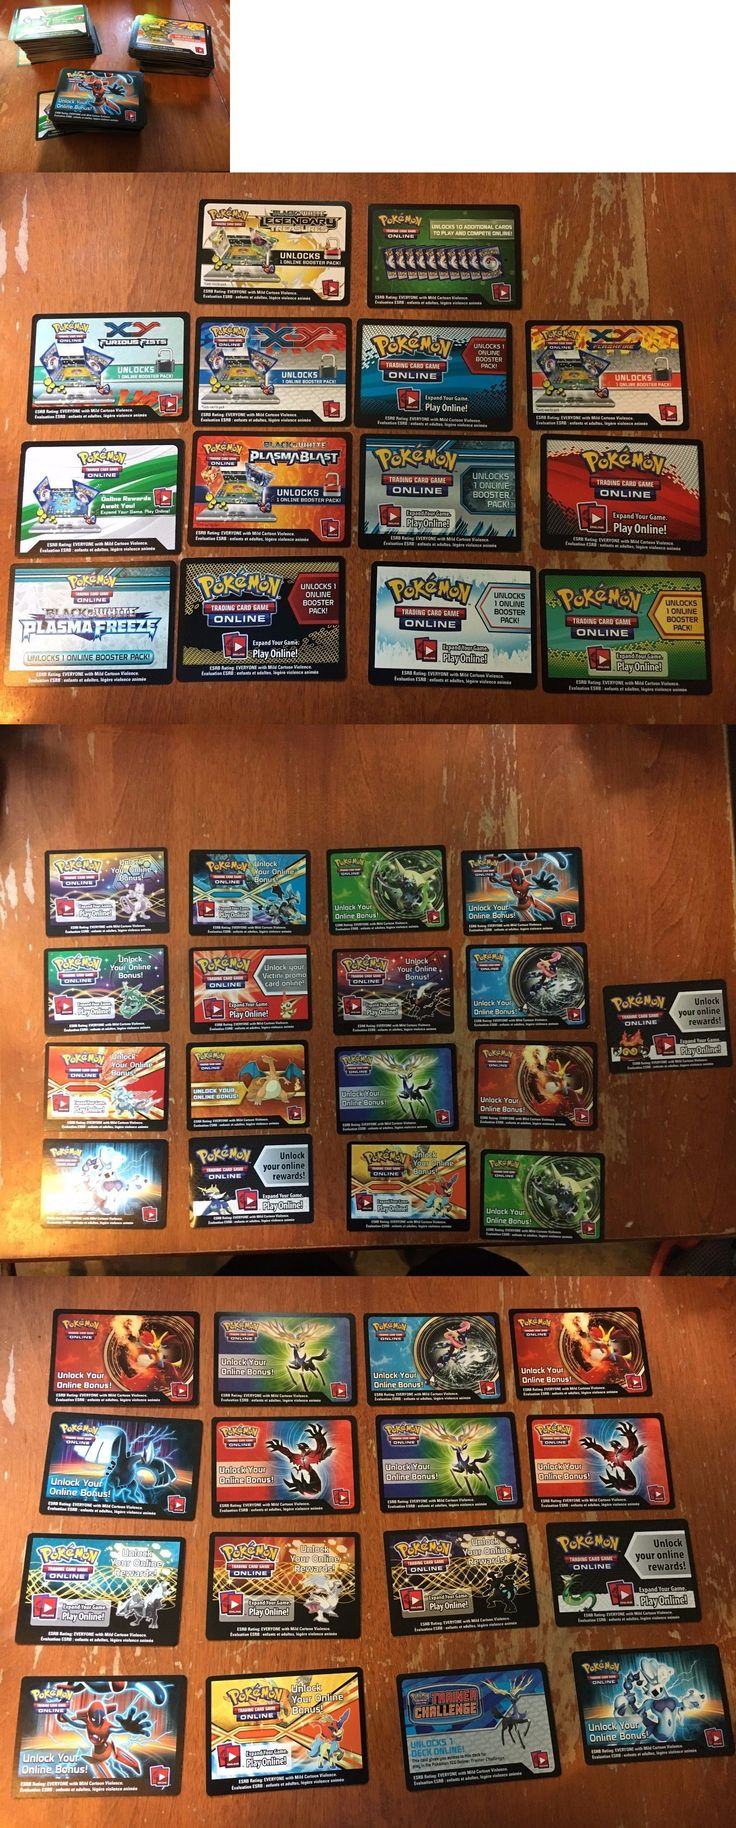 Other Pok mon TCG Items 2608: Huge Pokemon Tcg Online Code Cards Lot -> BUY IT NOW ONLY: $135 on eBay!